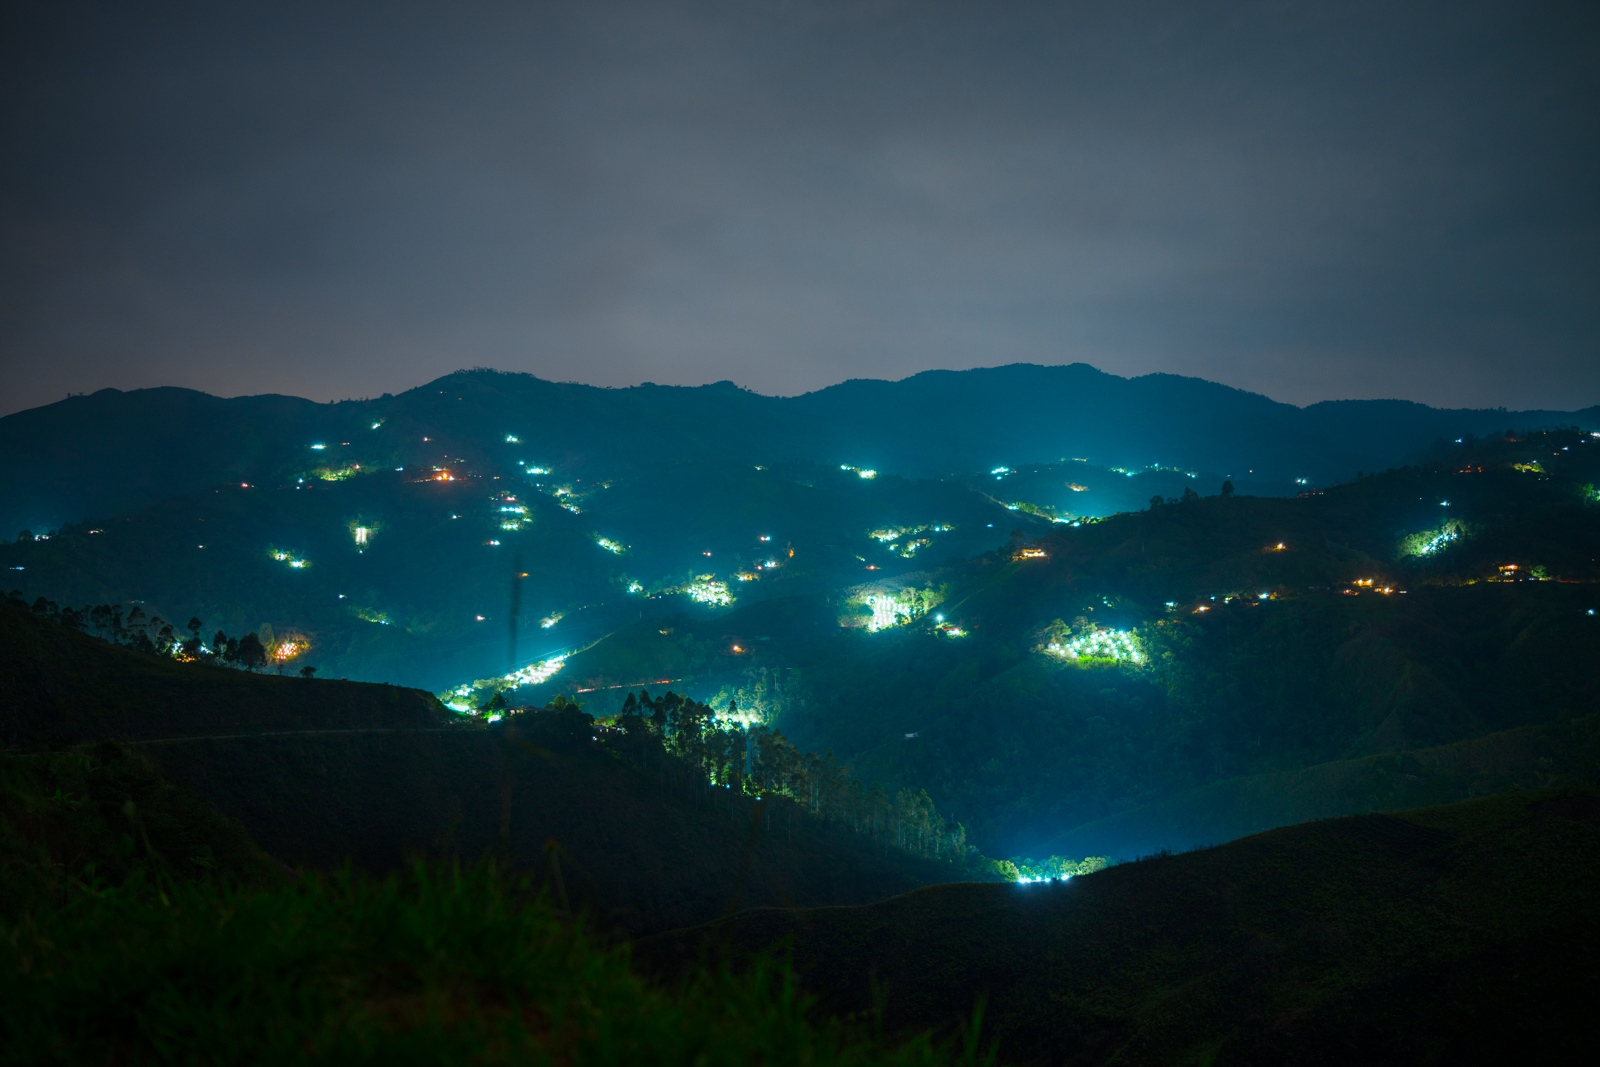 majority of lights in the image are illegal marijuana fields in the montains of Colombia, since marijuana needs constant light during the first 3 months of growth framers tend to steal the electricity from street poles by hooking pealed cables to them and powering their own plantations.